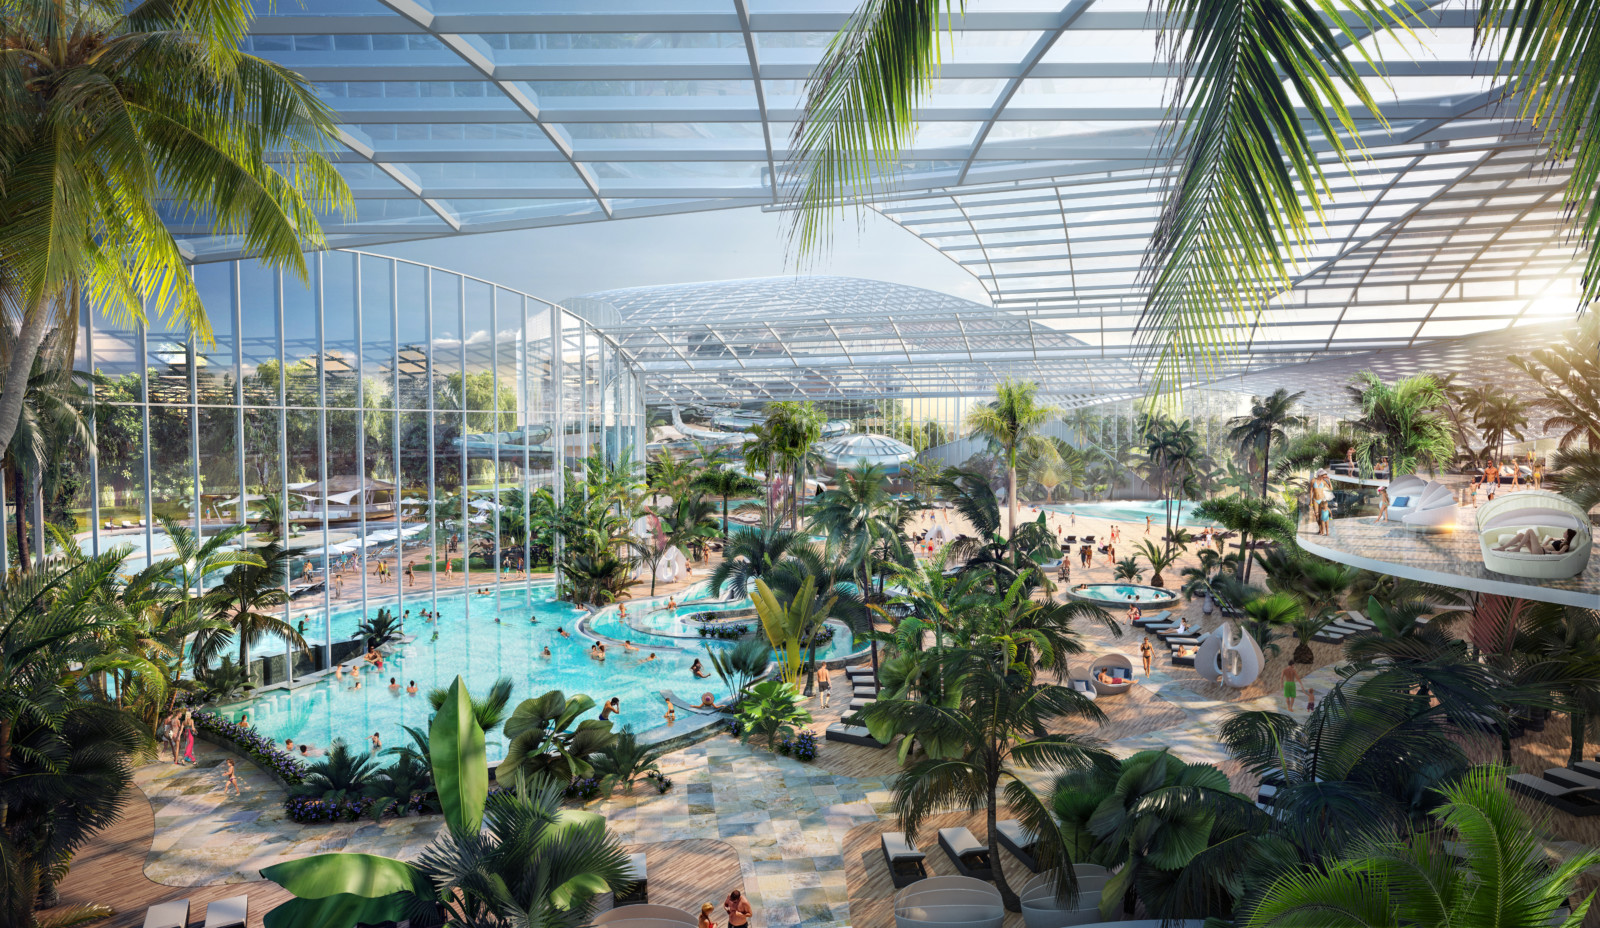 A sneak peek inside the waterpark resort with 25 pools and 35 slides opening in Trafford, The Manc